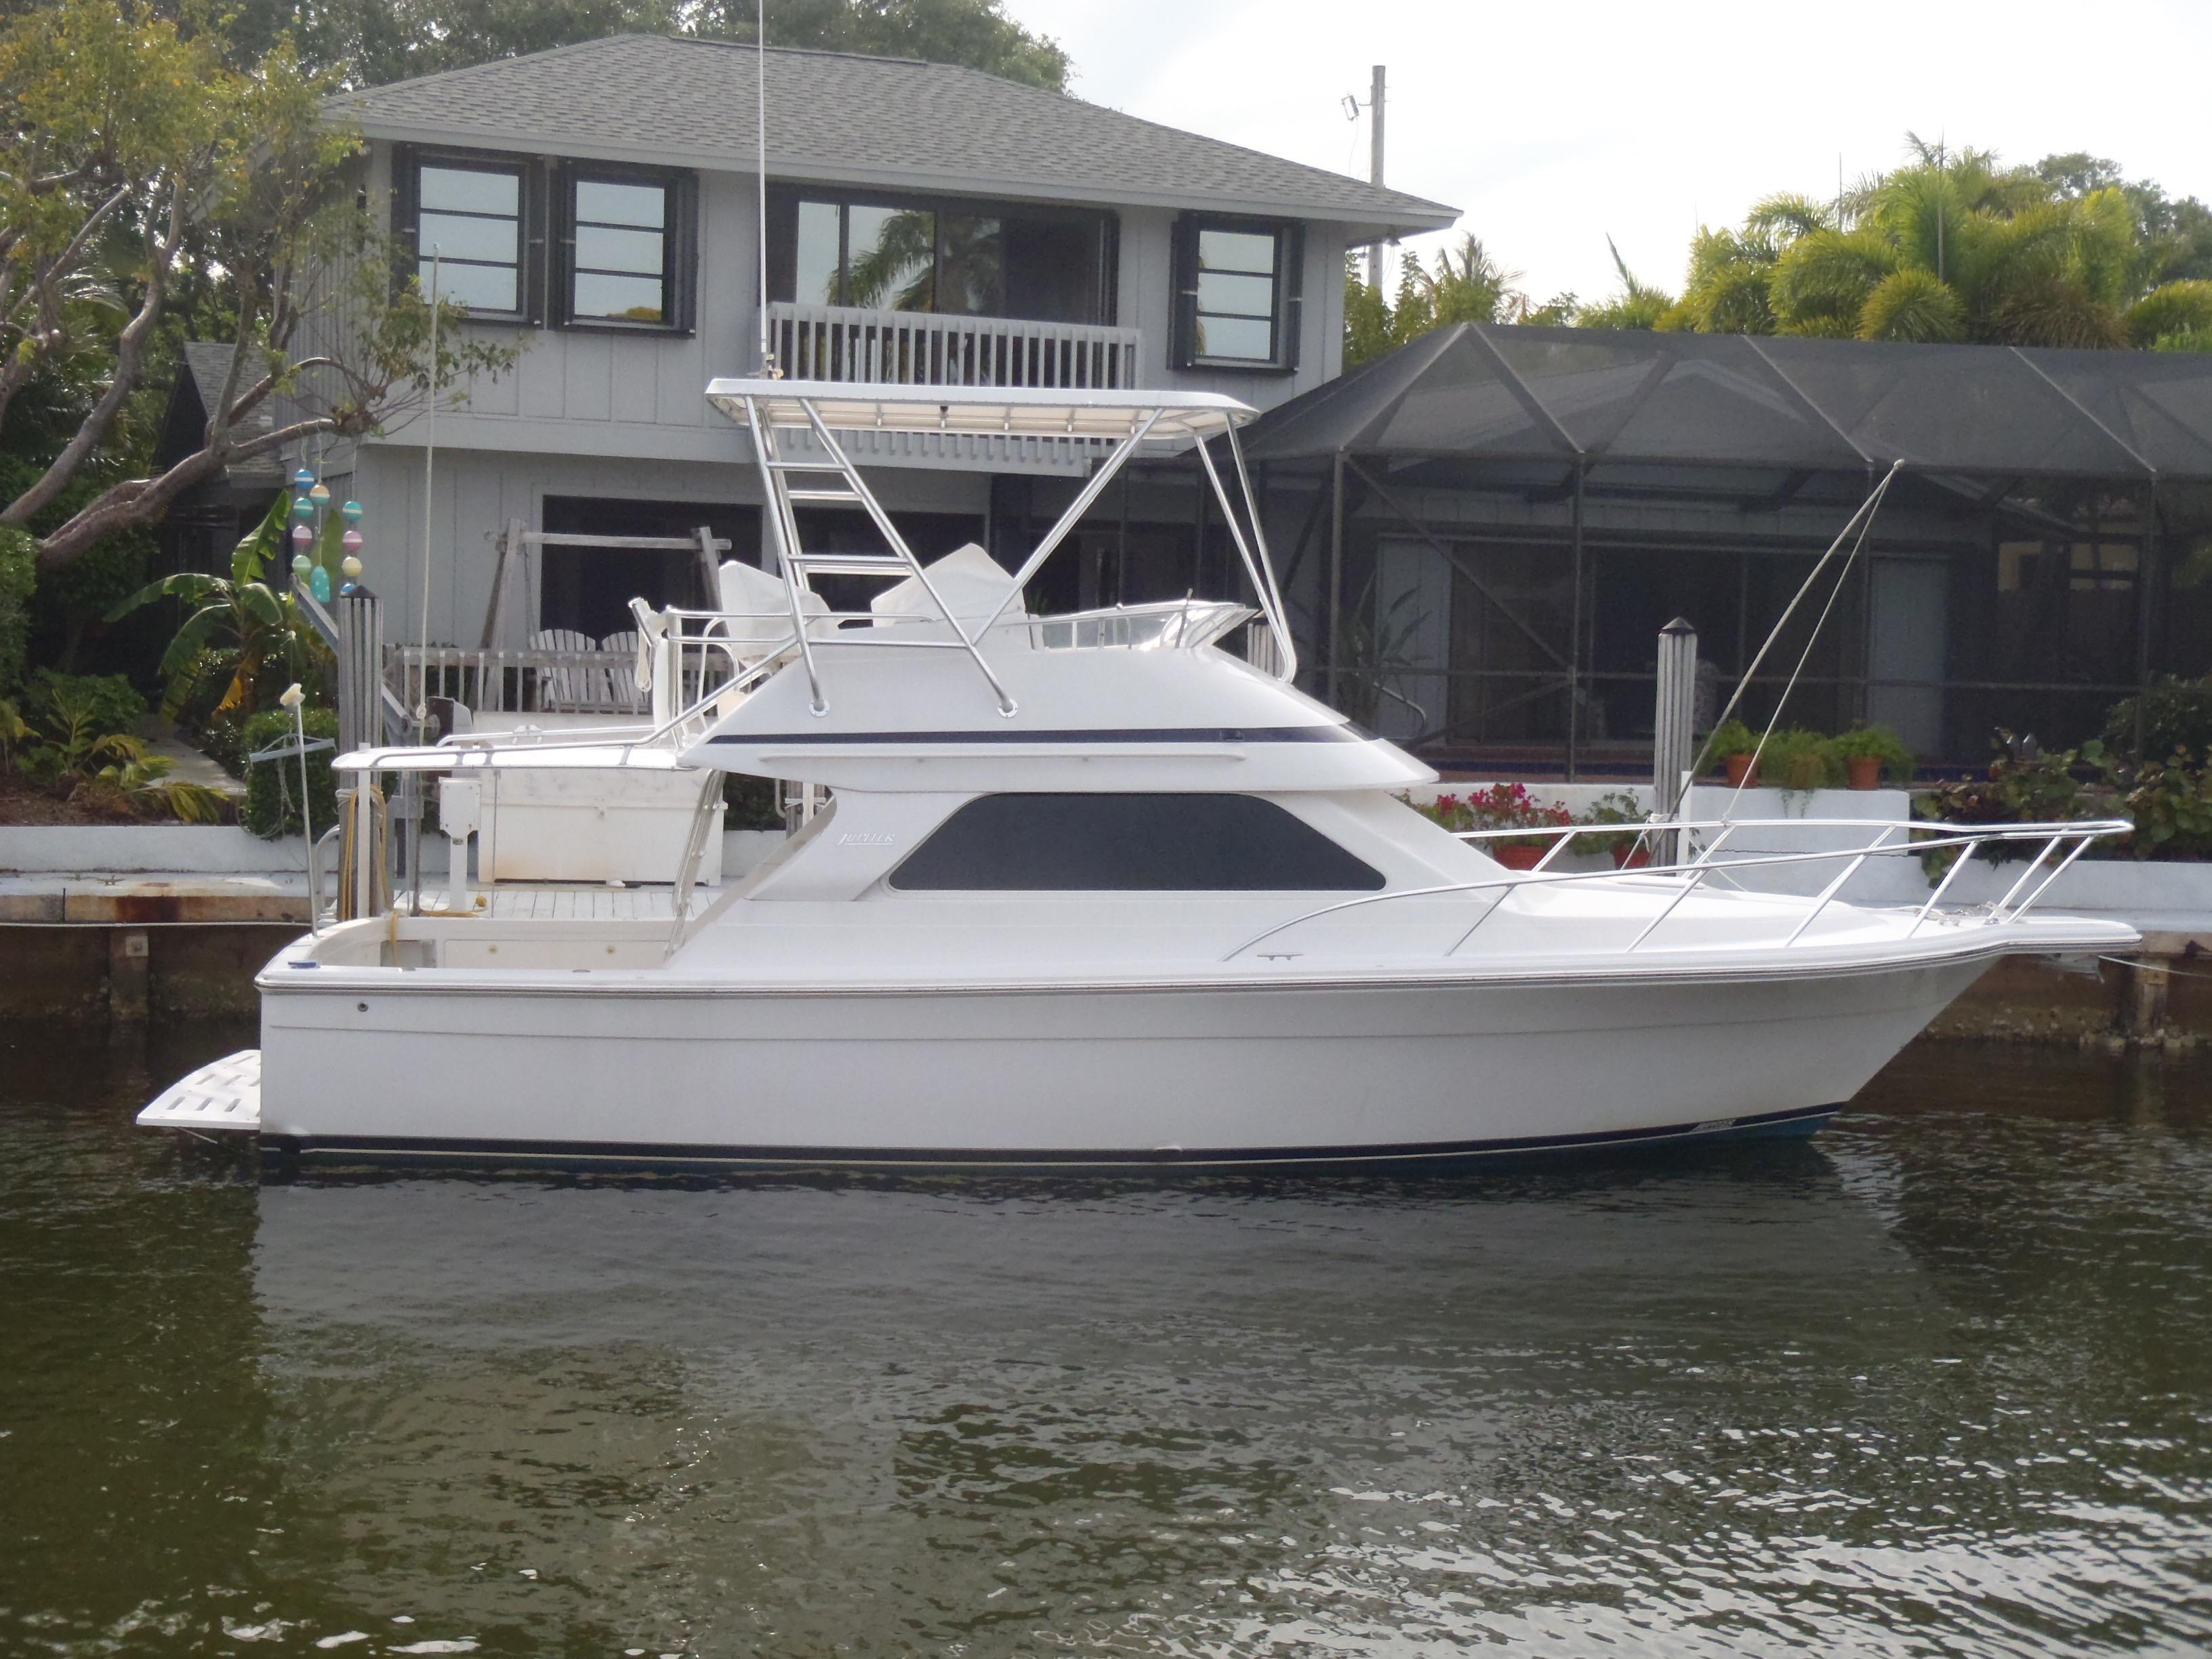 Used Jupiter Yachts For Sale MLS Boat Search Results